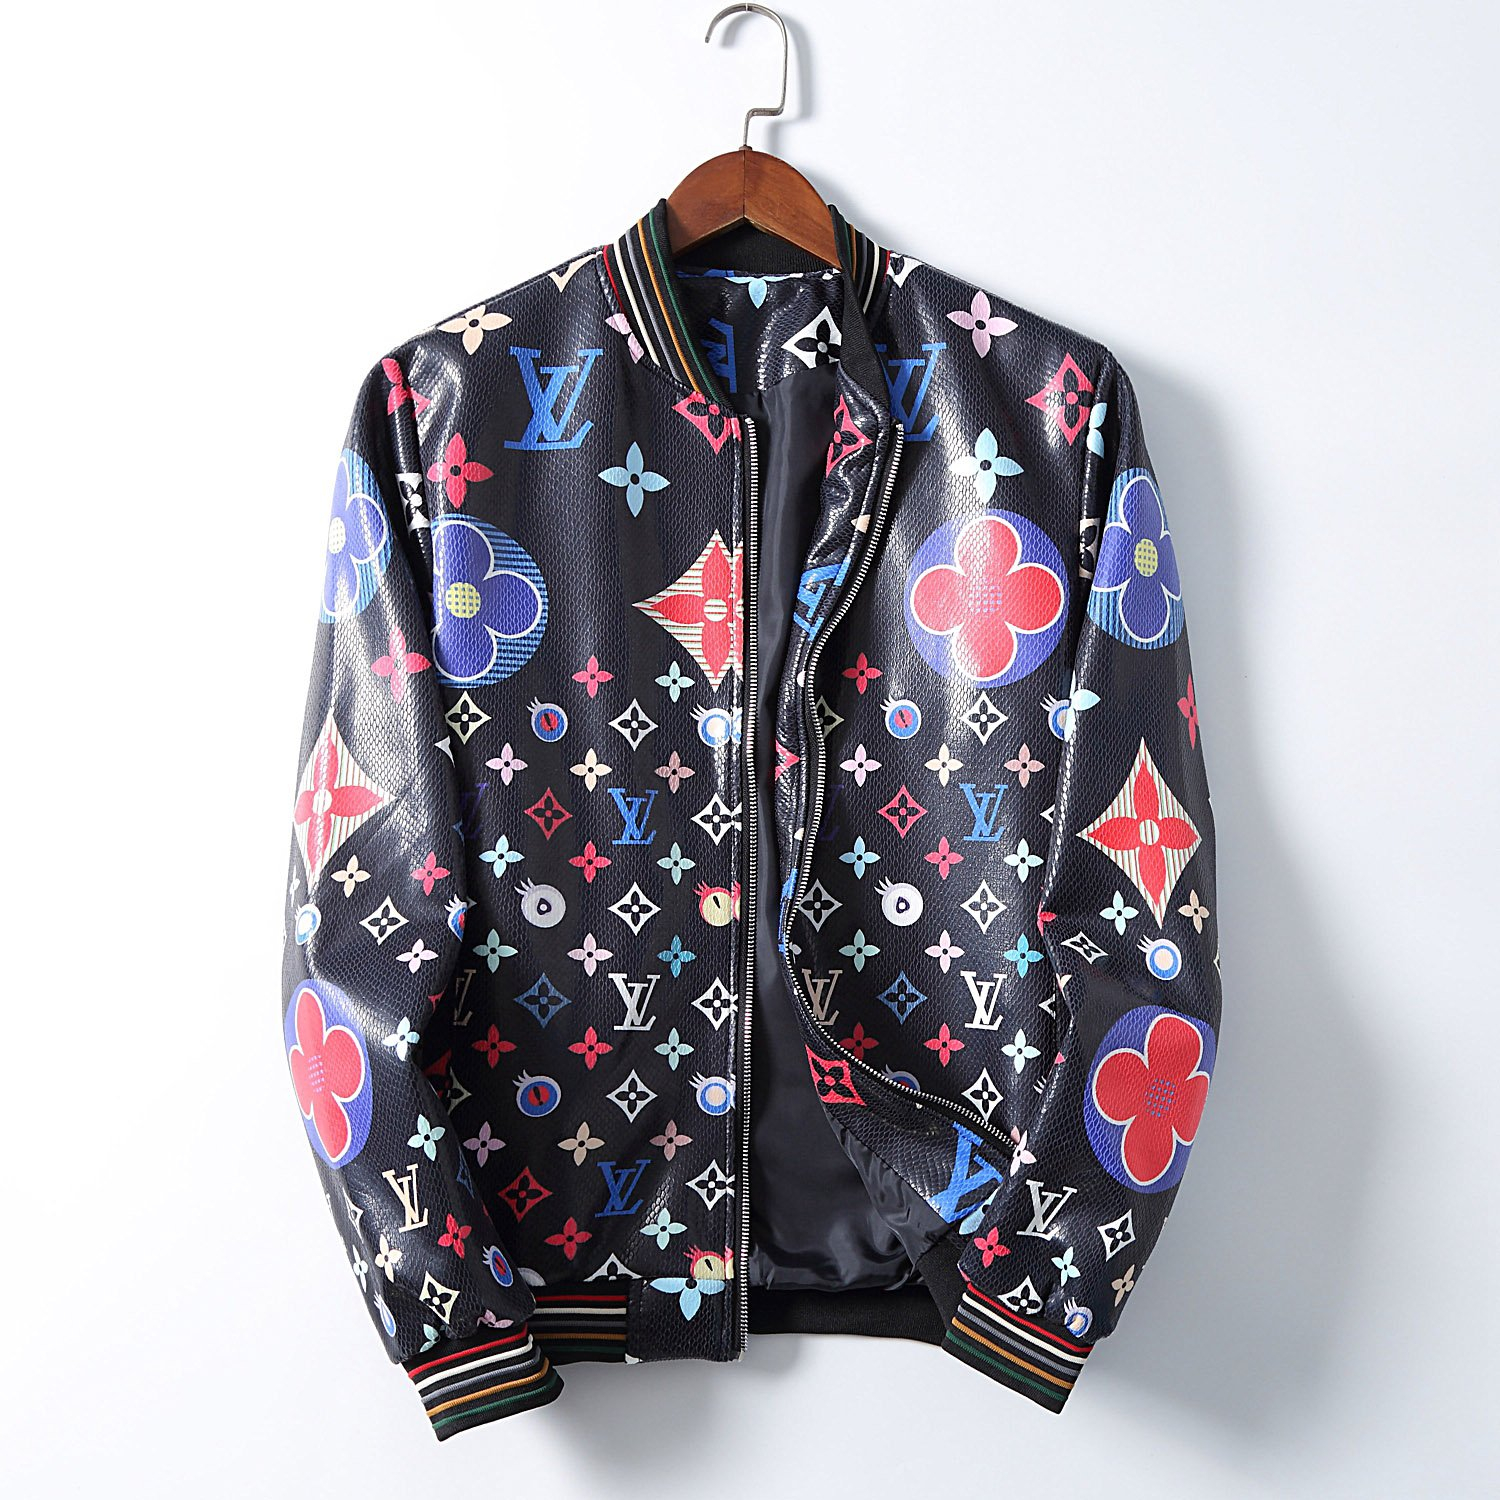 Image of LV Louis Vuitton Coral velvet Loose Solid Color Pocket Long Sleeve Cardigan Jacket Coat leather clothing